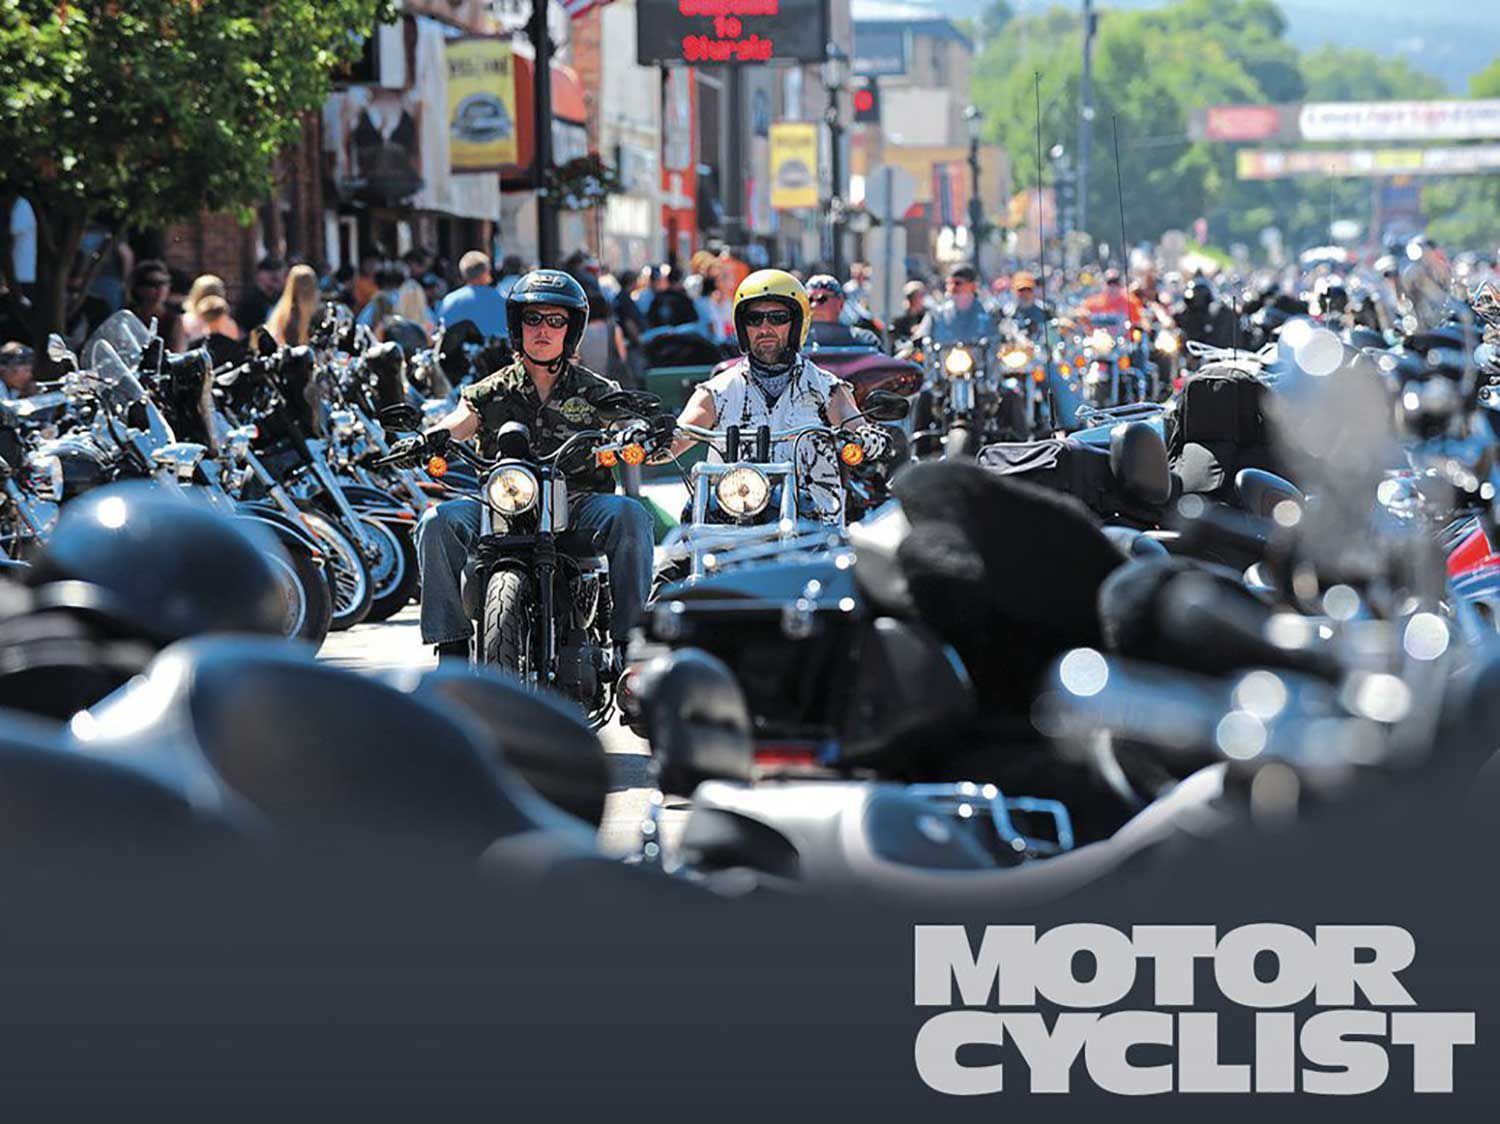 The crowds at Sturgis always seem to start out with a ride down Main Street. After that, it's time to go buck wild and have some fun.